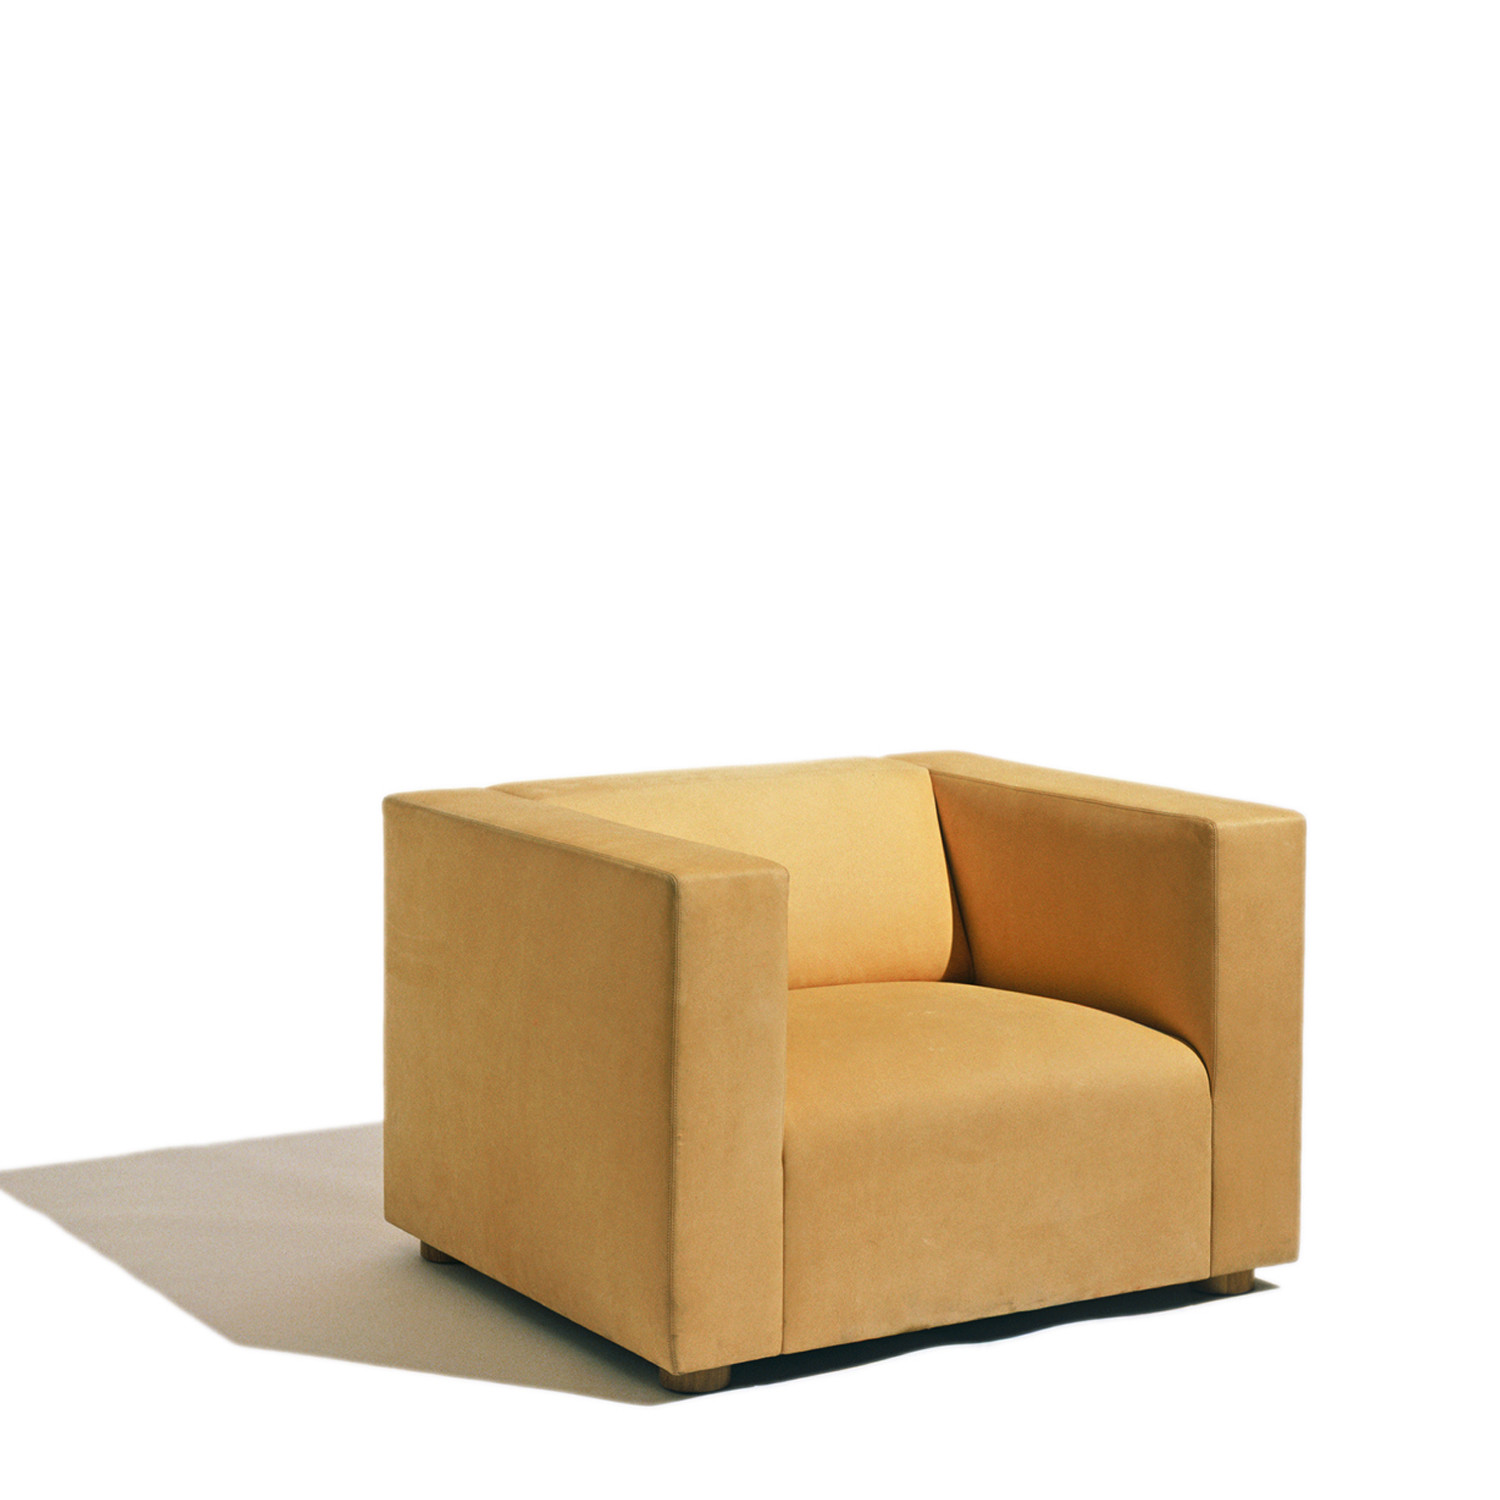 SM1 Armchair by Knoll